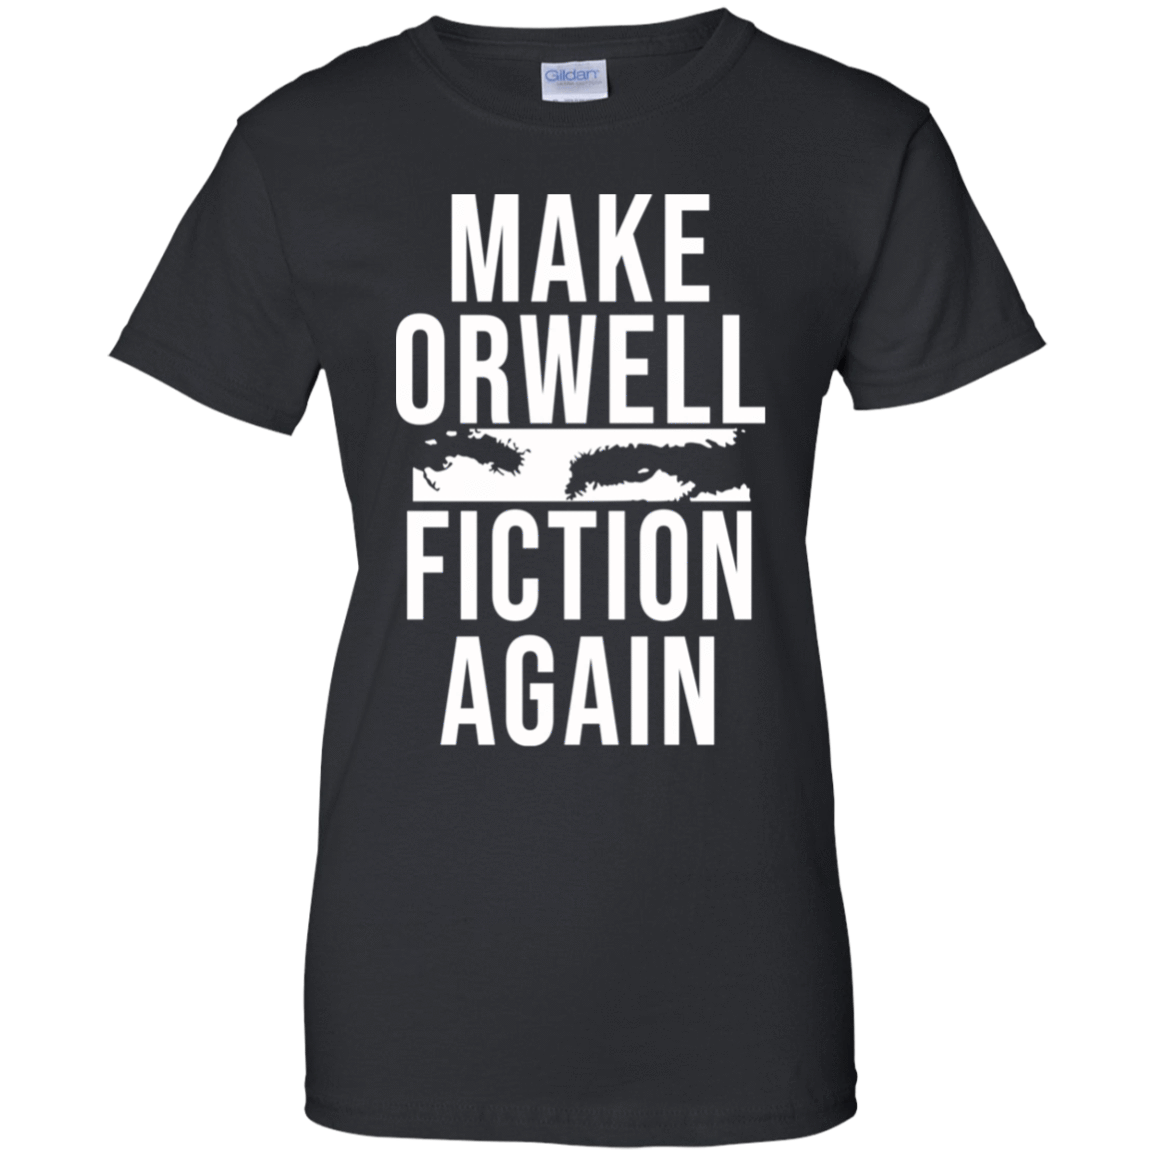 Make Orwell Fiction Again 939-9248-74209469-44695 - Tee Ript